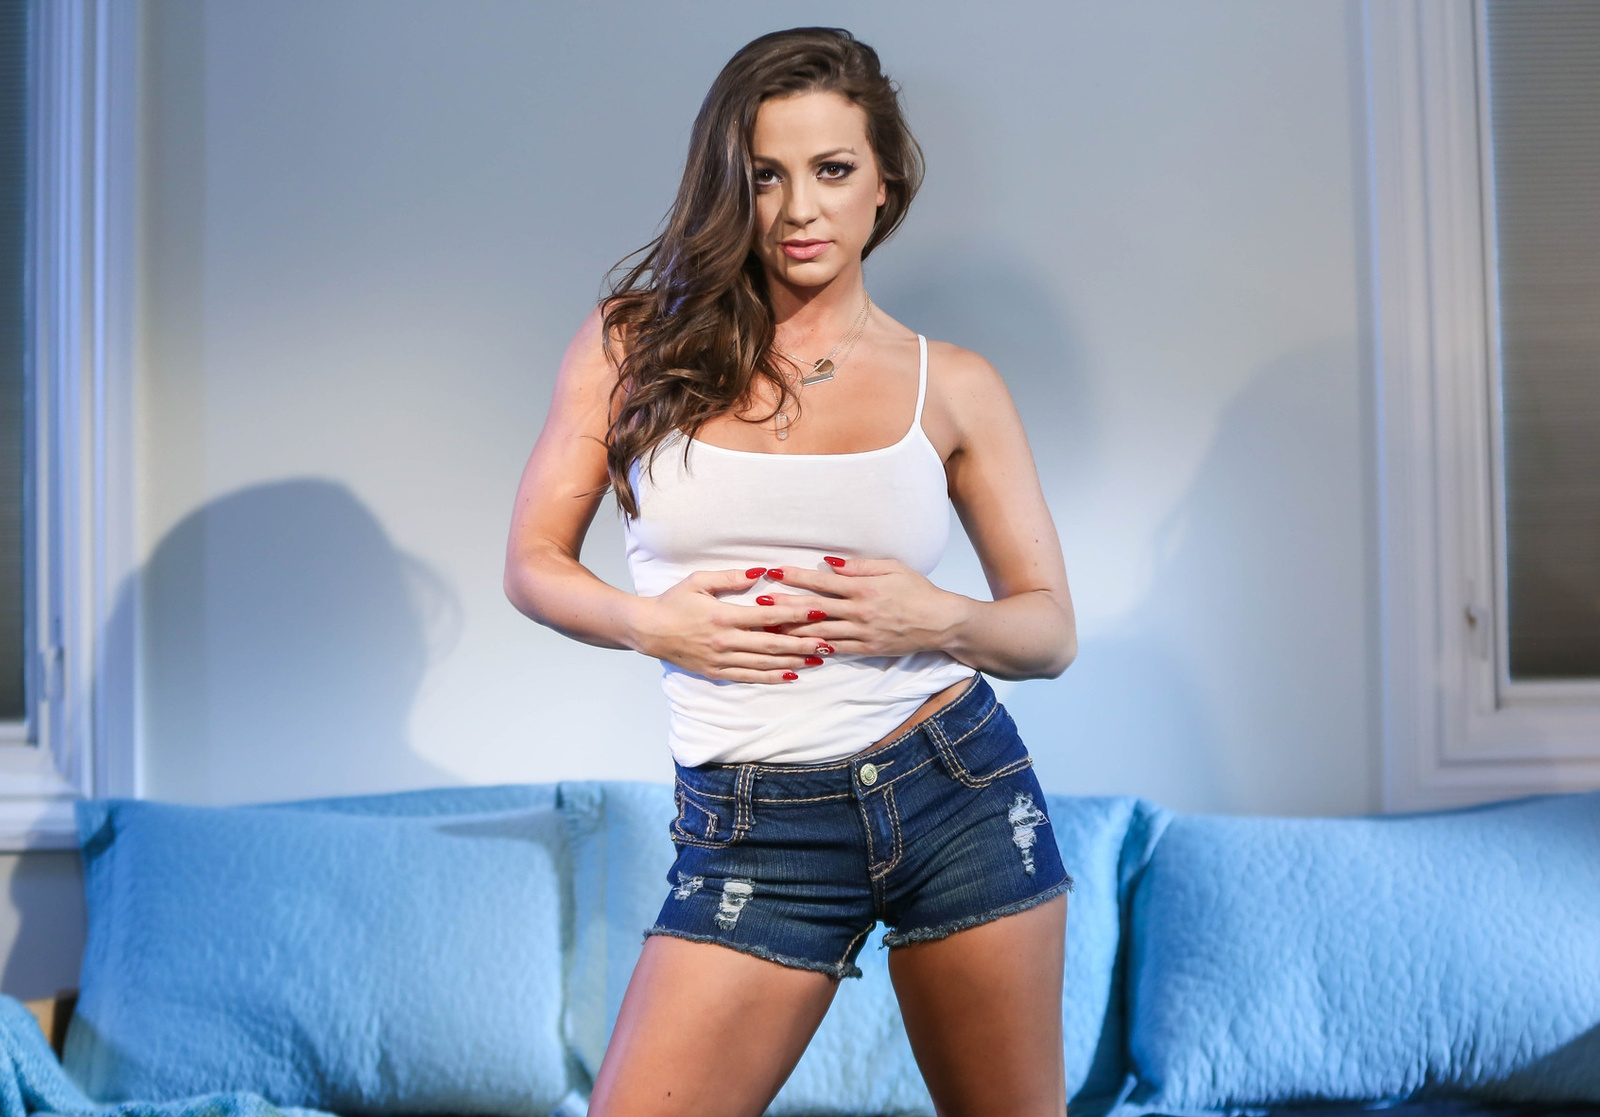 abigail mac hd